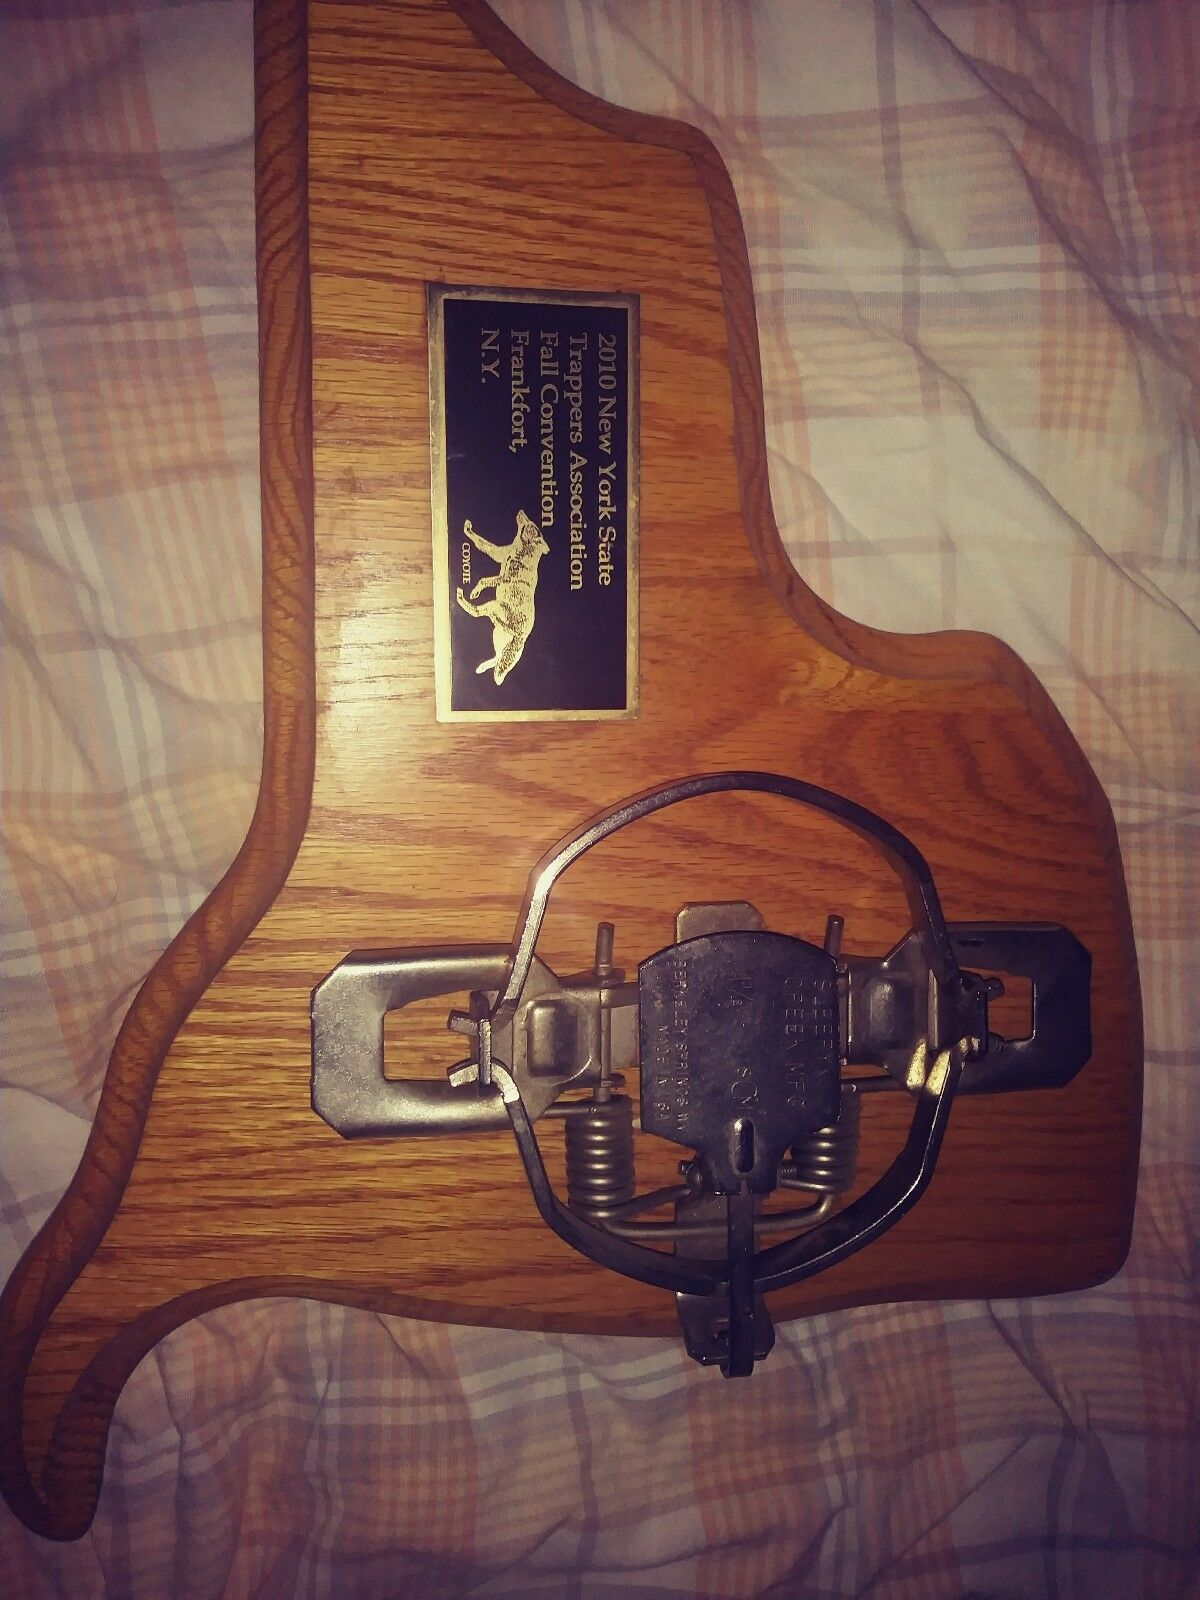 N.Y.S.Trappers Ass. Herkimer 2010 with Coyote on it. Collector's Plaque